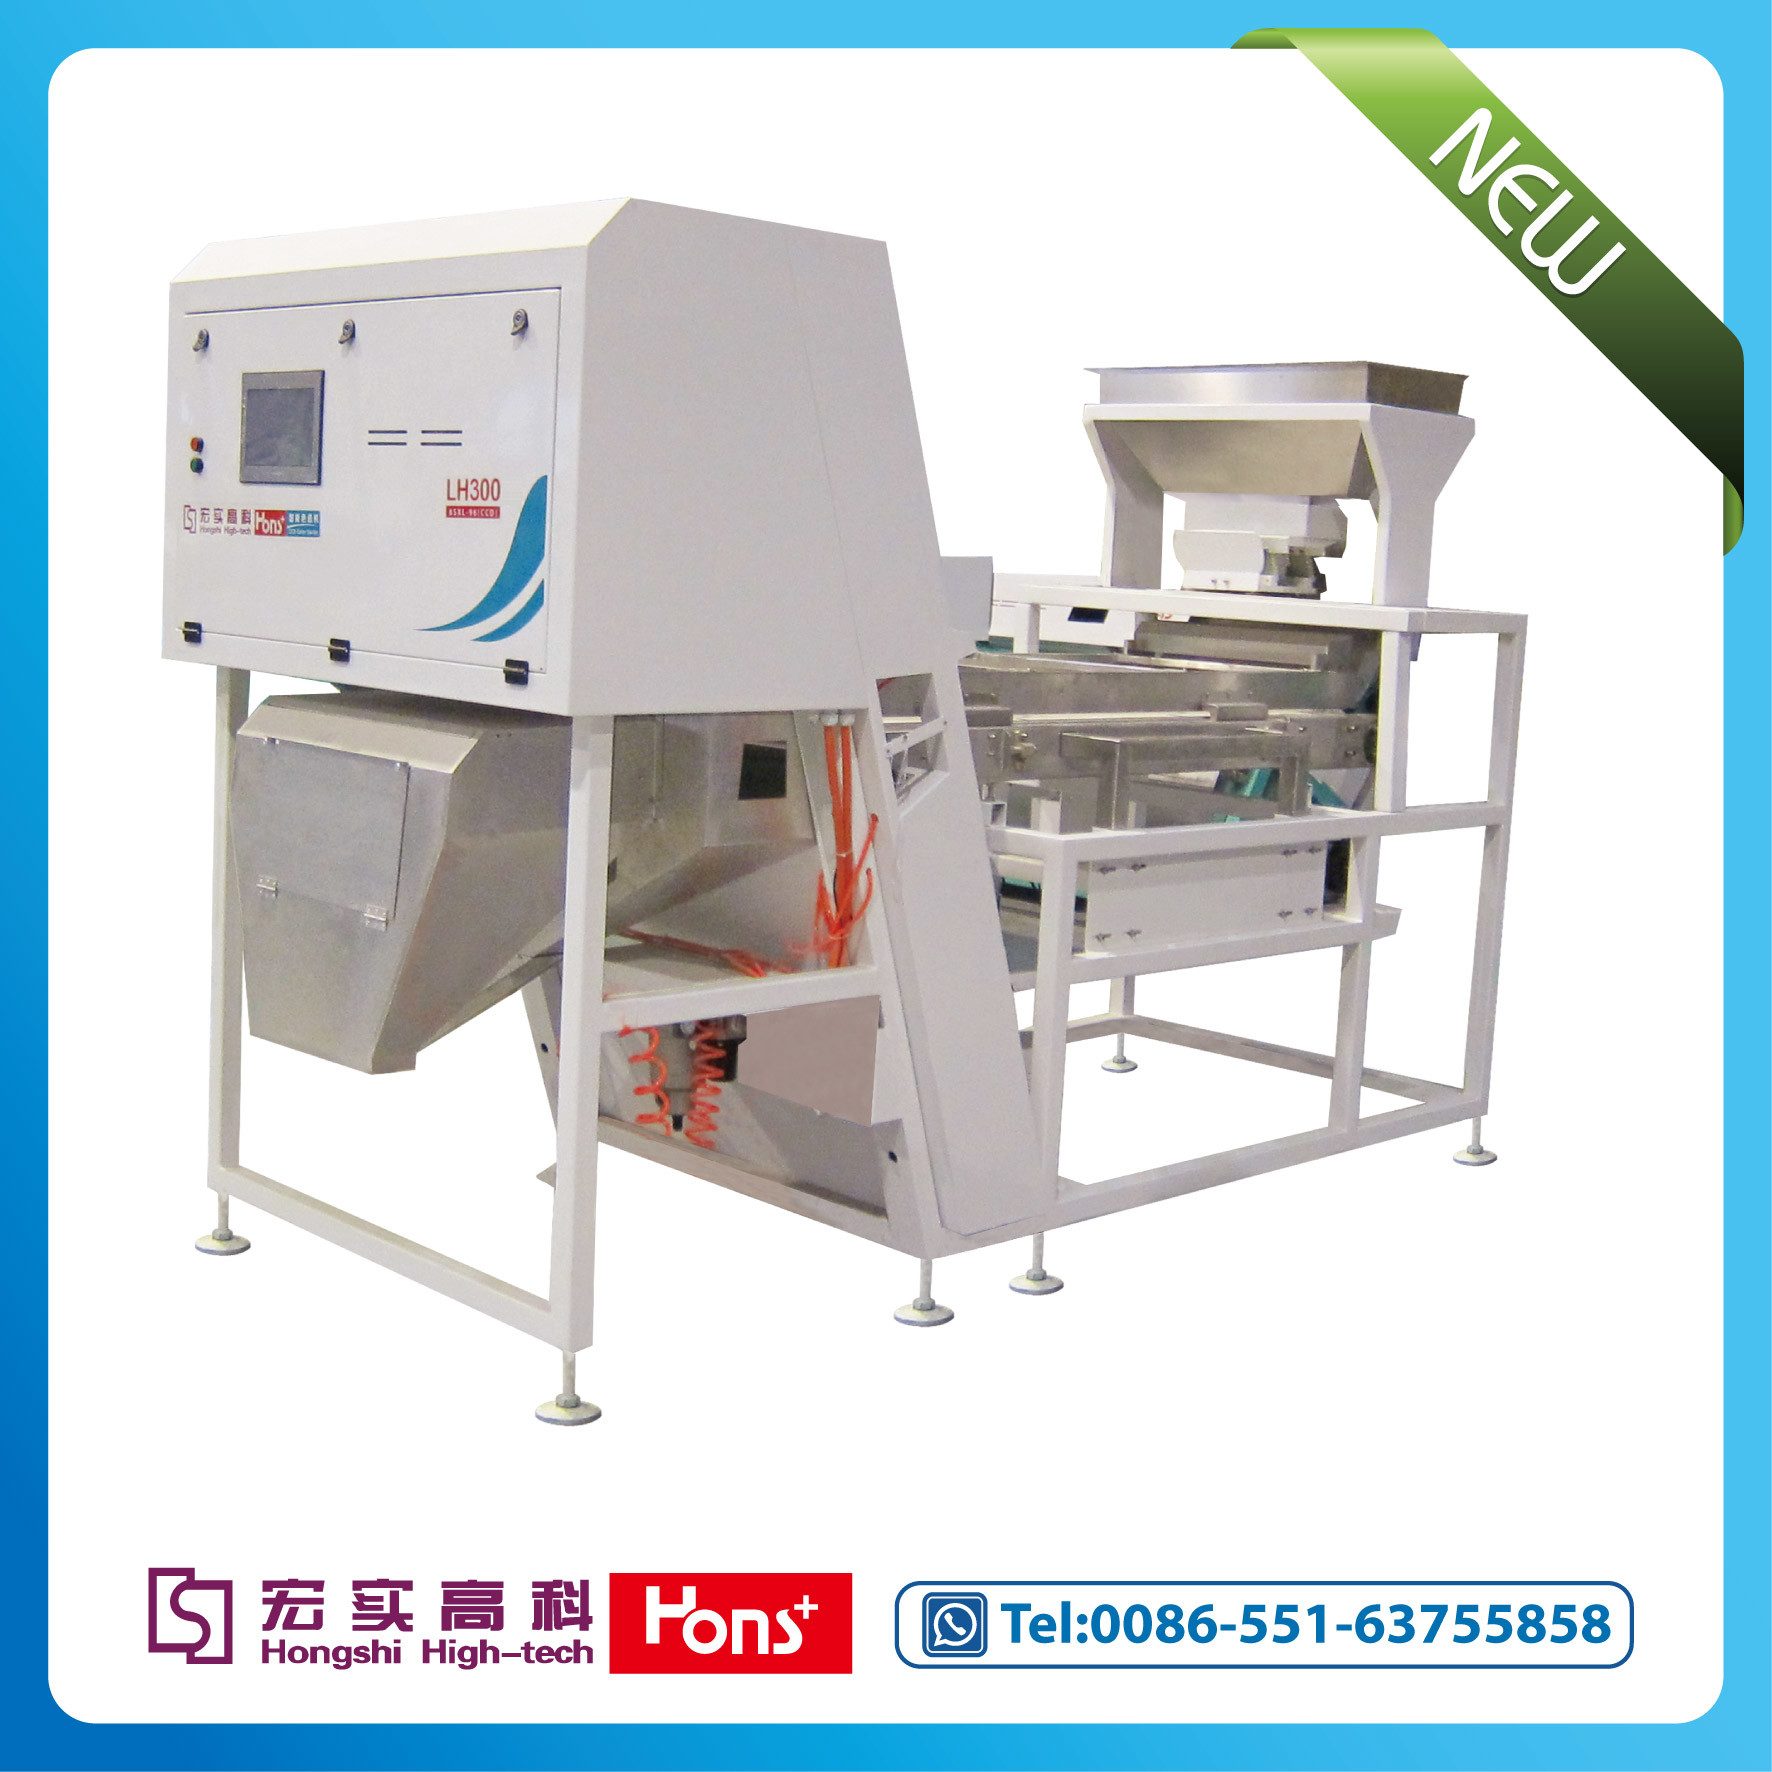 Plastic CCD Belt Sorter Machine From Hongshi Group